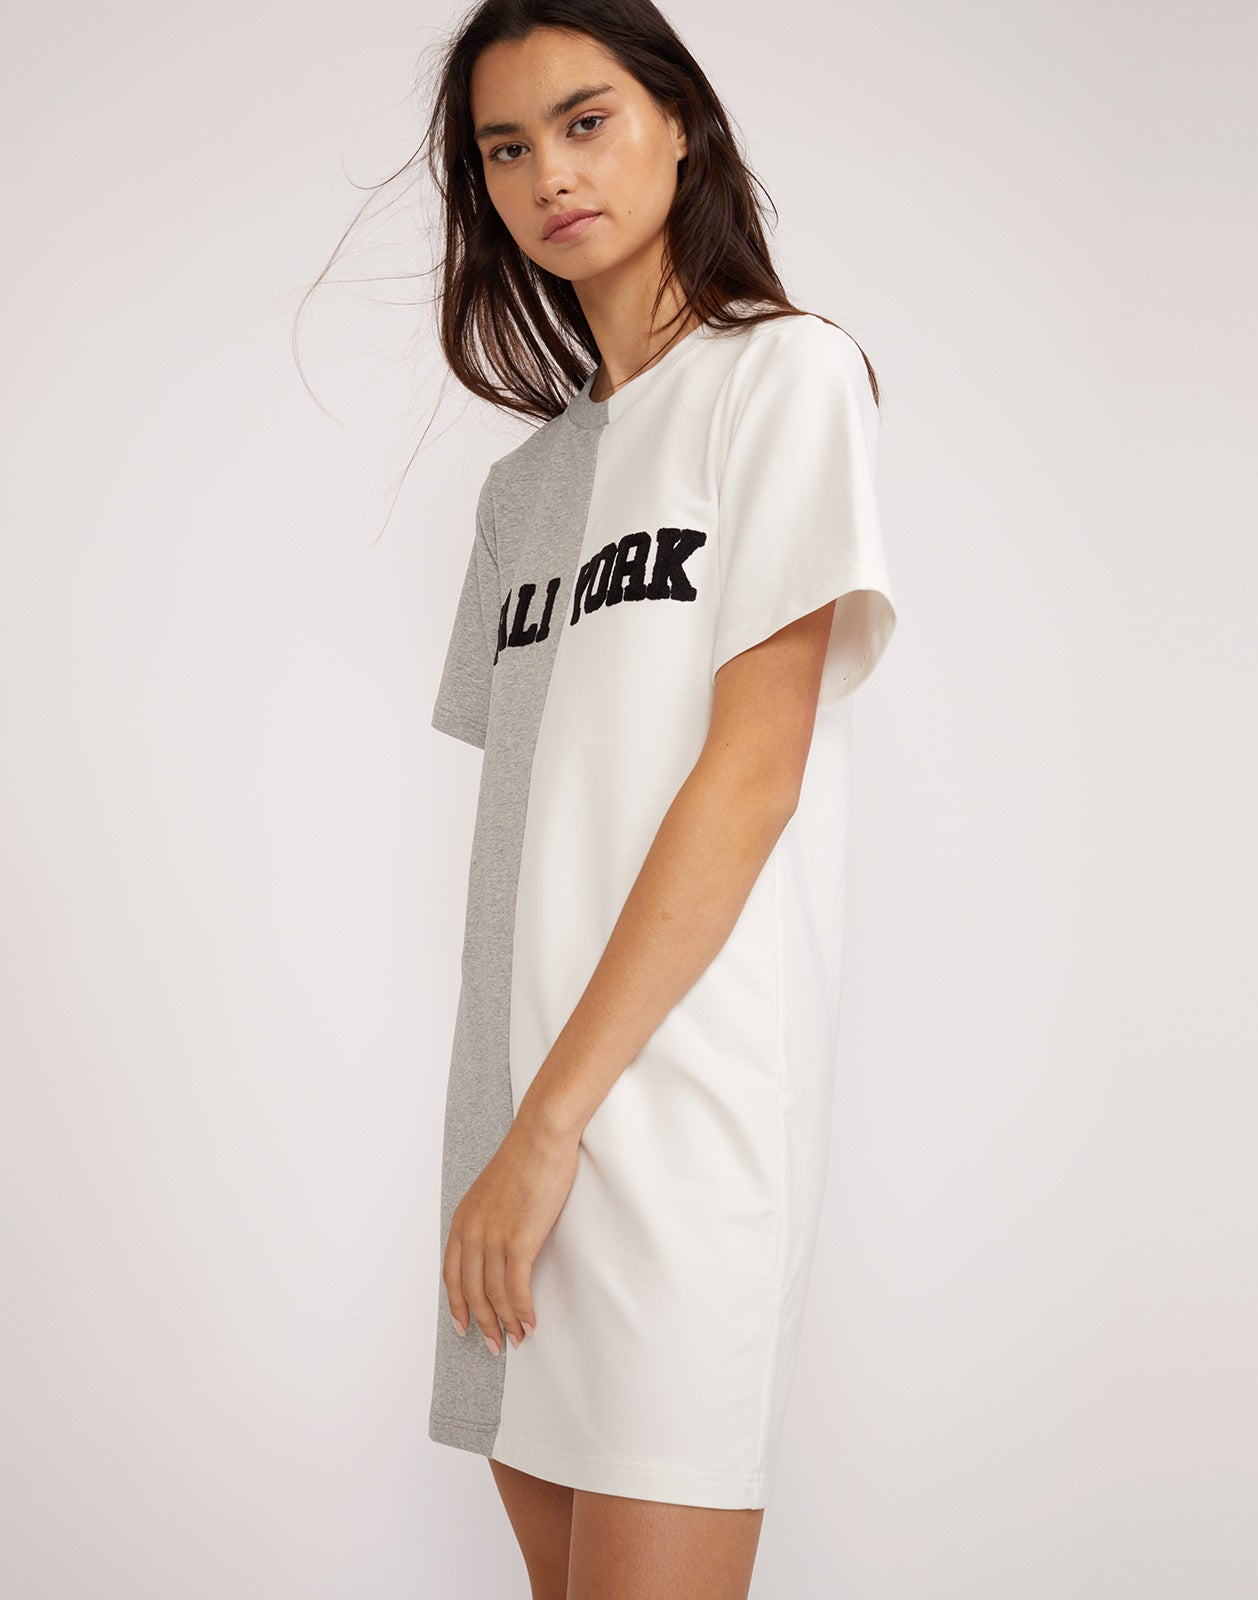 Side view of the CaliYork t-shirt dress in half grey half white with black lettering.